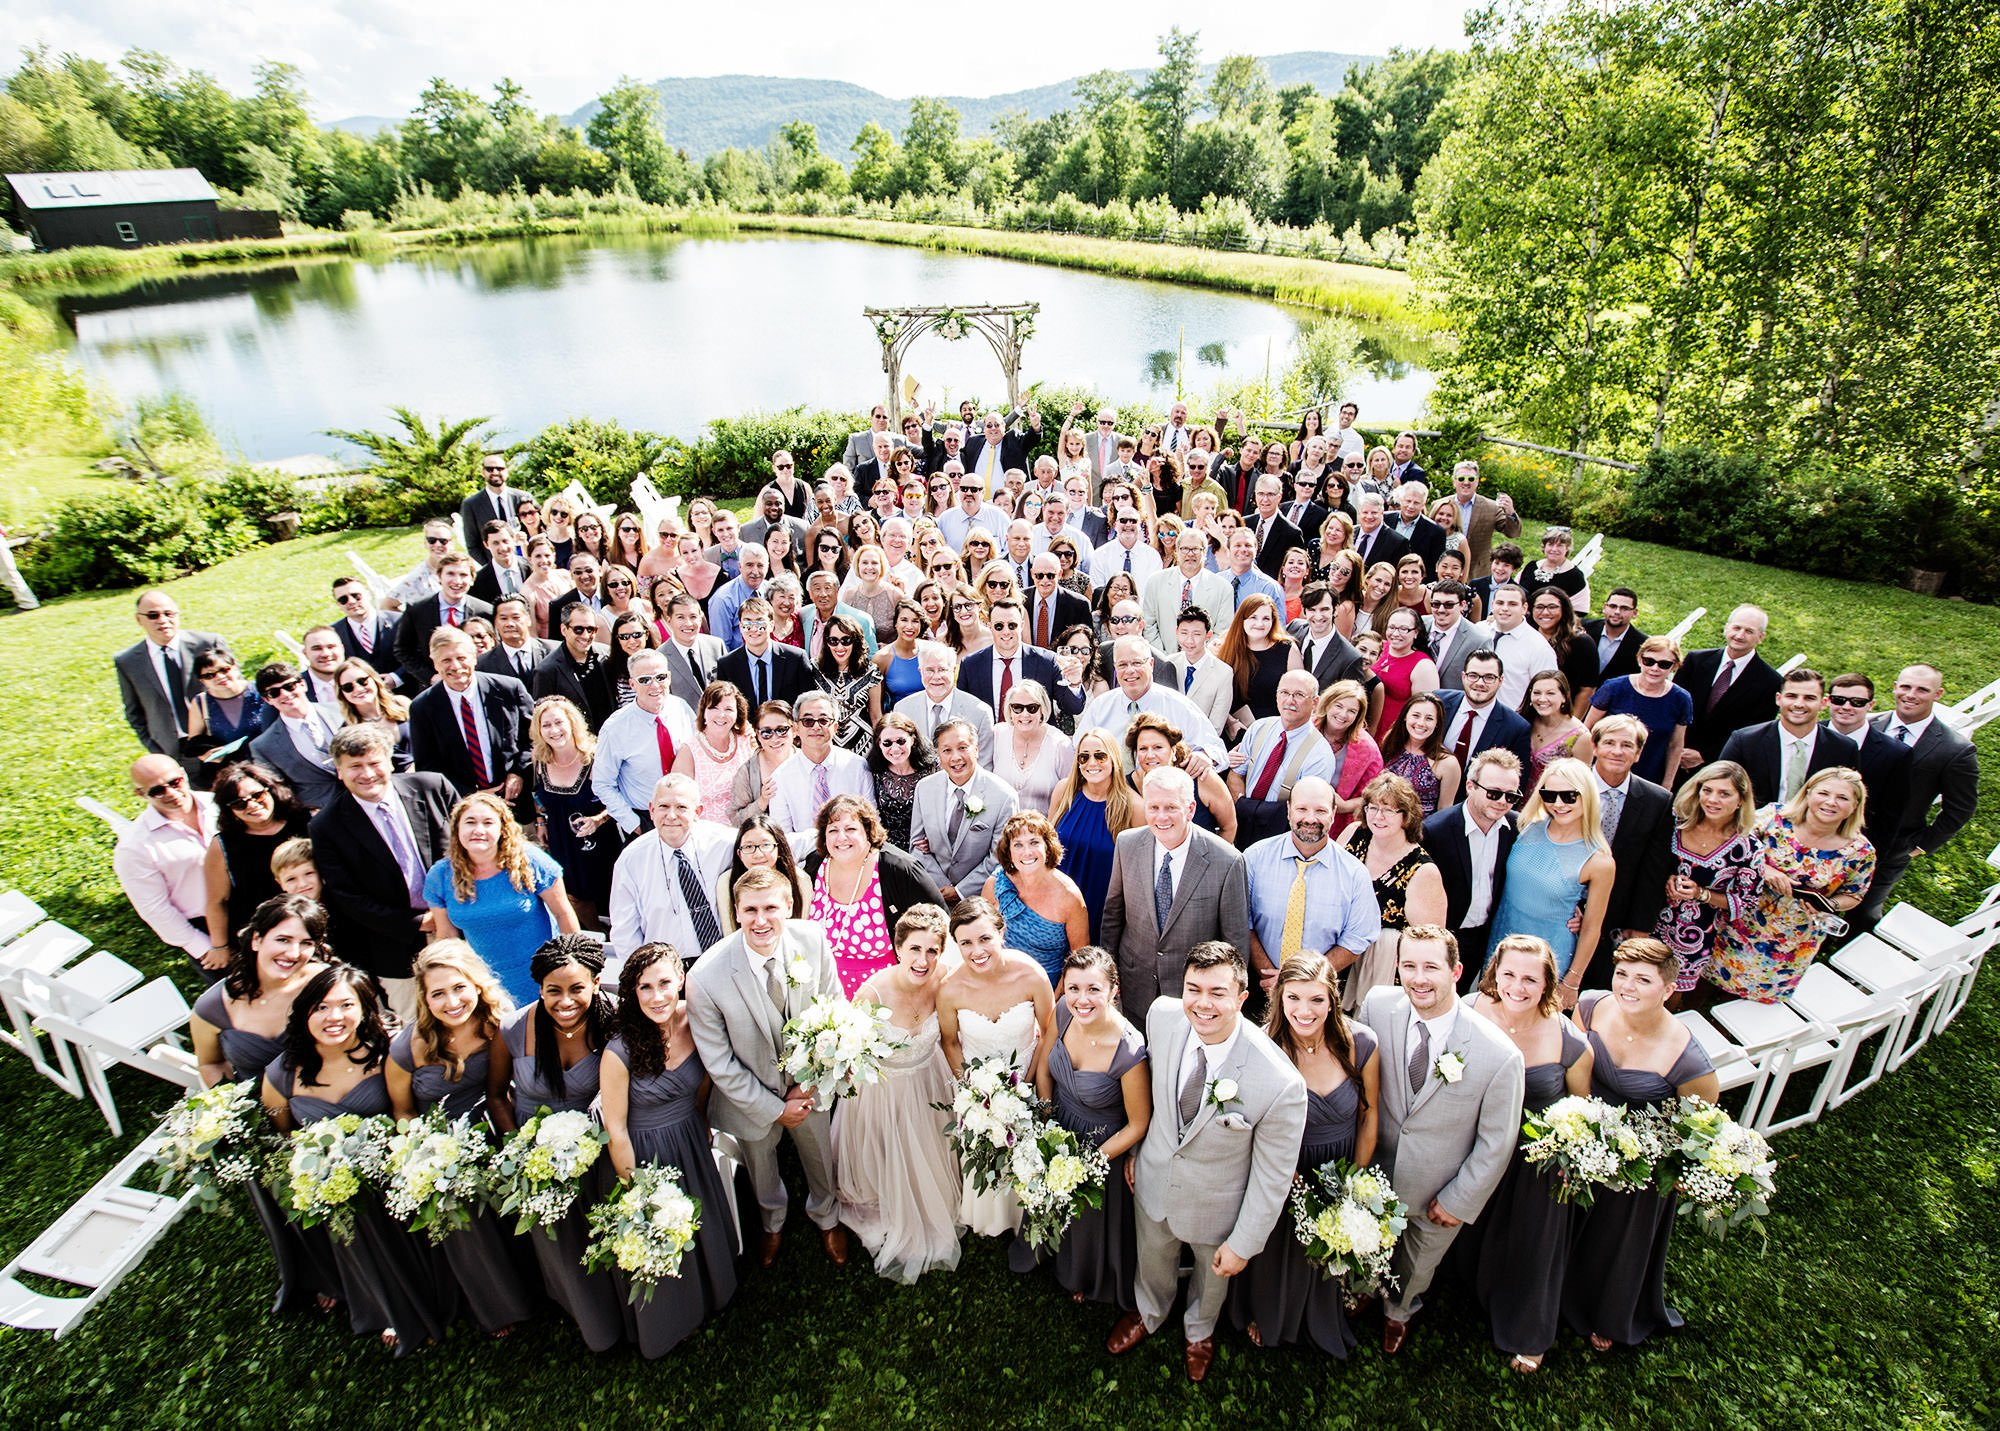 An overall portrait of the wedding party and their guests at the Ponds.